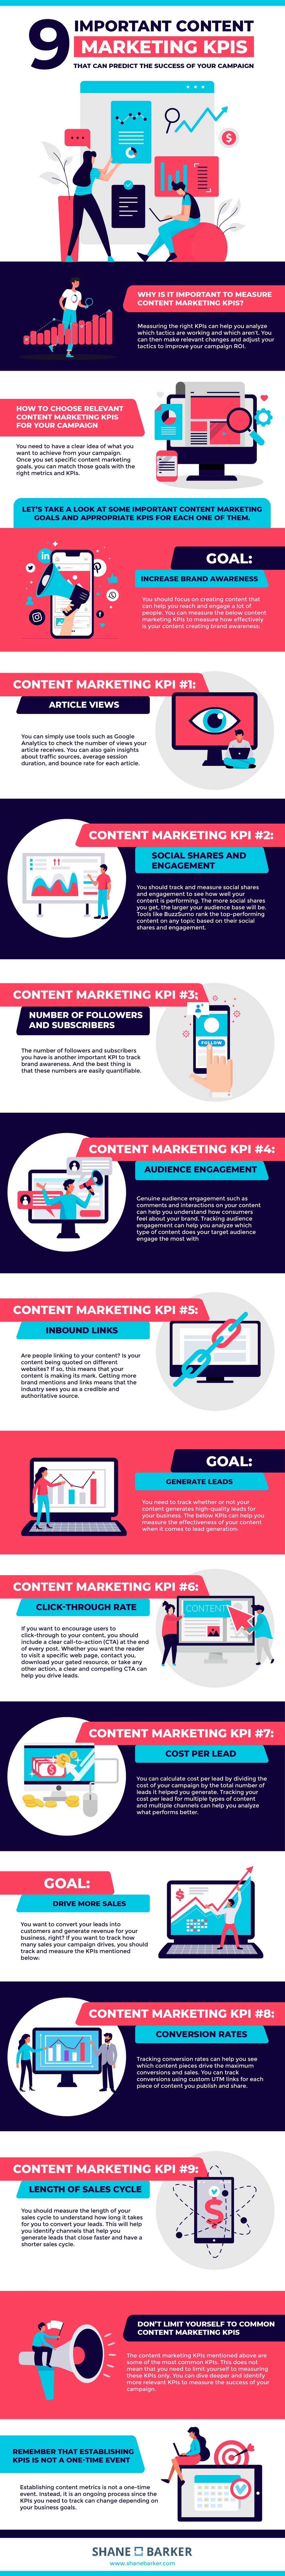 Content Marketing KPIs: Important Metrics You Need to Track